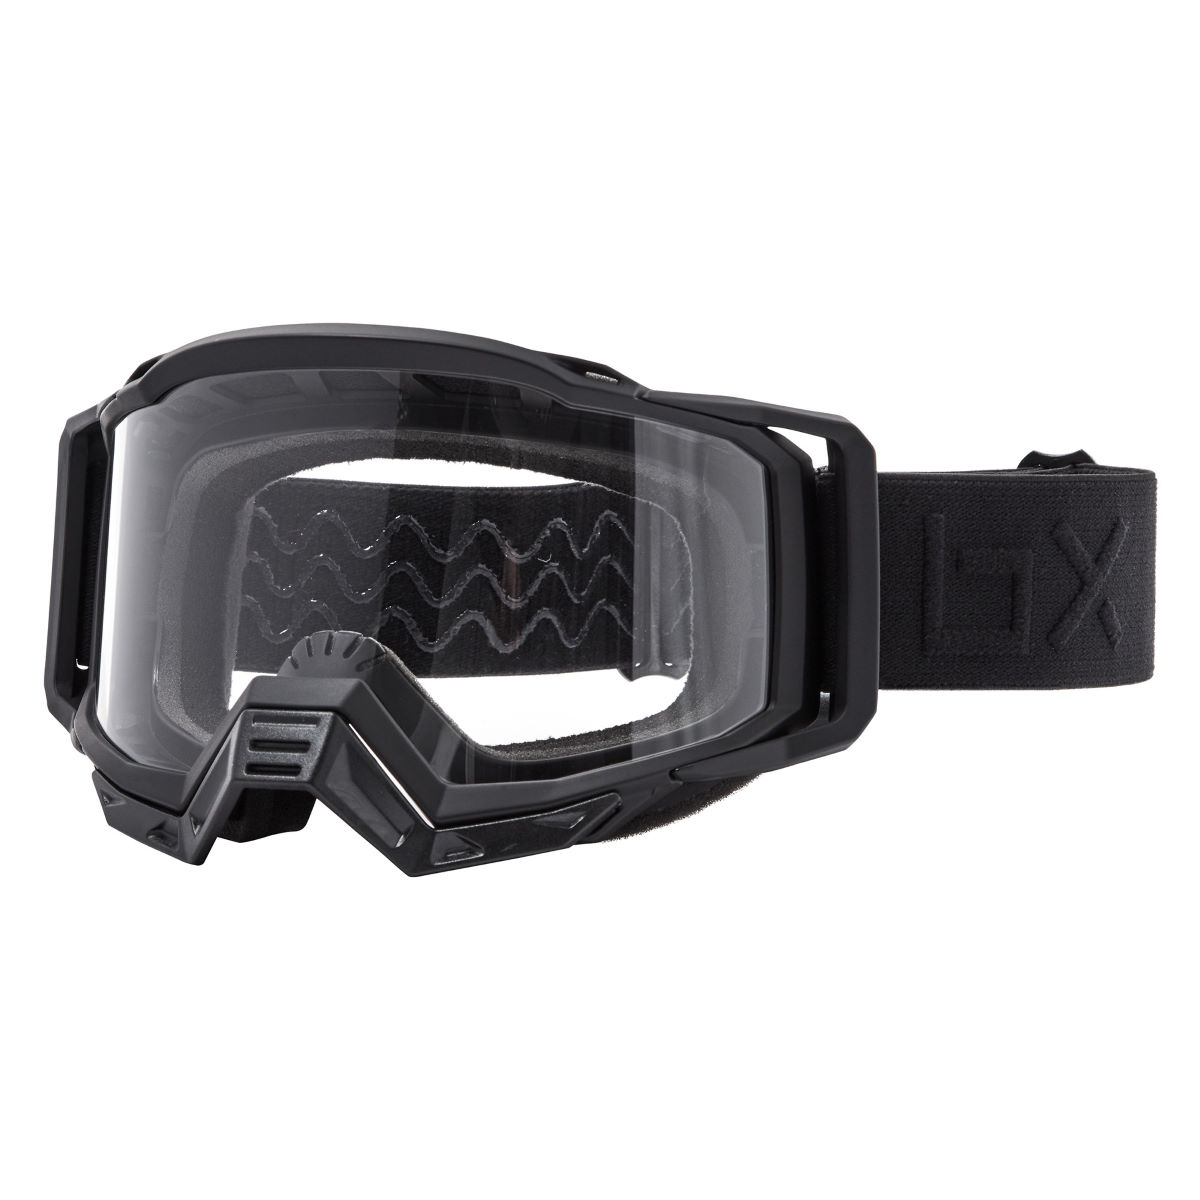 Brand-x G-1 Outrigger Goggles - One Size Black  Cycling Goggles